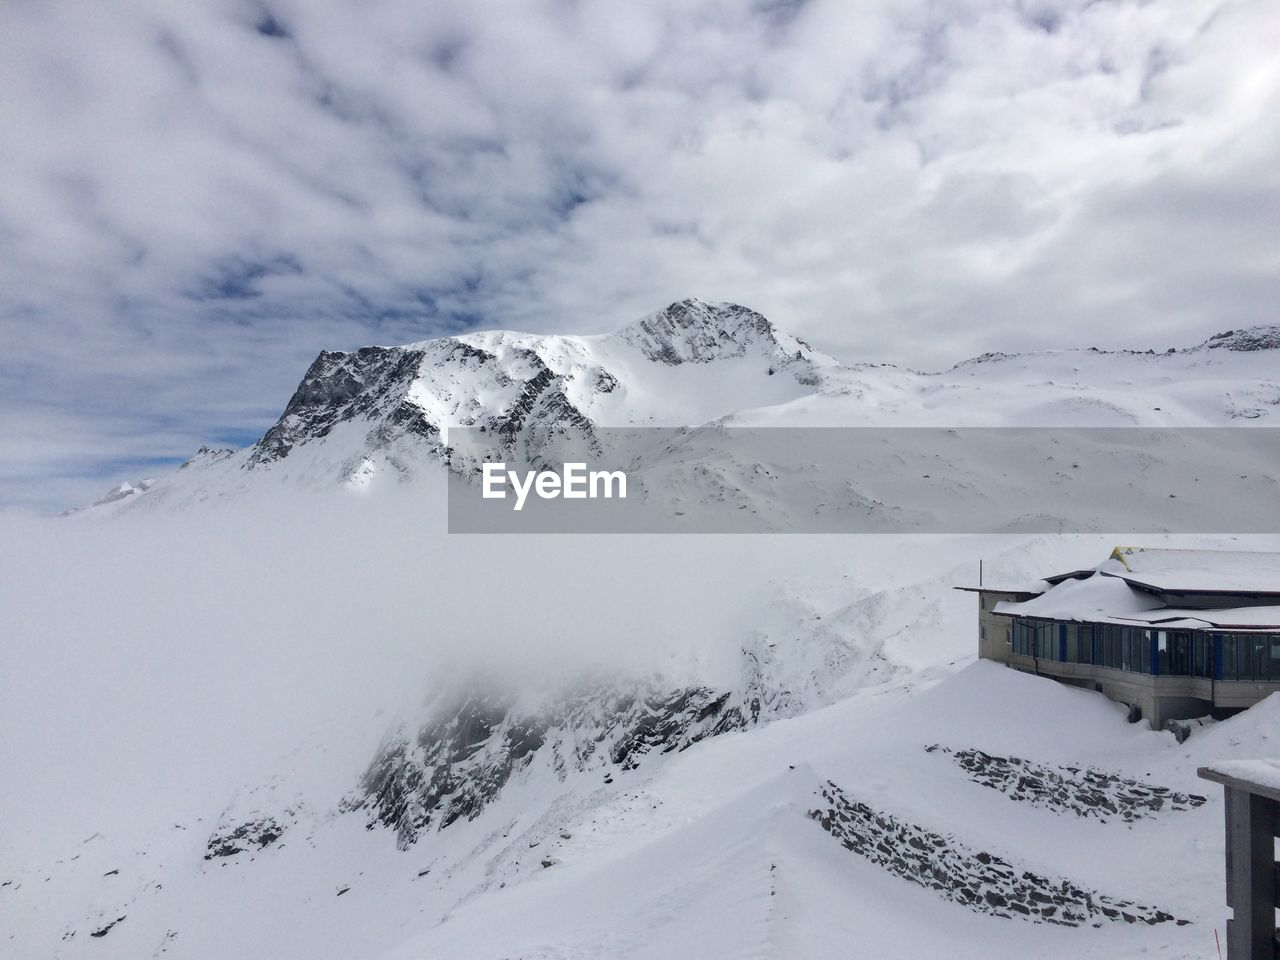 cold temperature, winter, snow, cloud - sky, sky, mountain, architecture, beauty in nature, scenics - nature, built structure, white color, environment, building exterior, landscape, nature, covering, building, tranquil scene, no people, snowcapped mountain, extreme weather, range